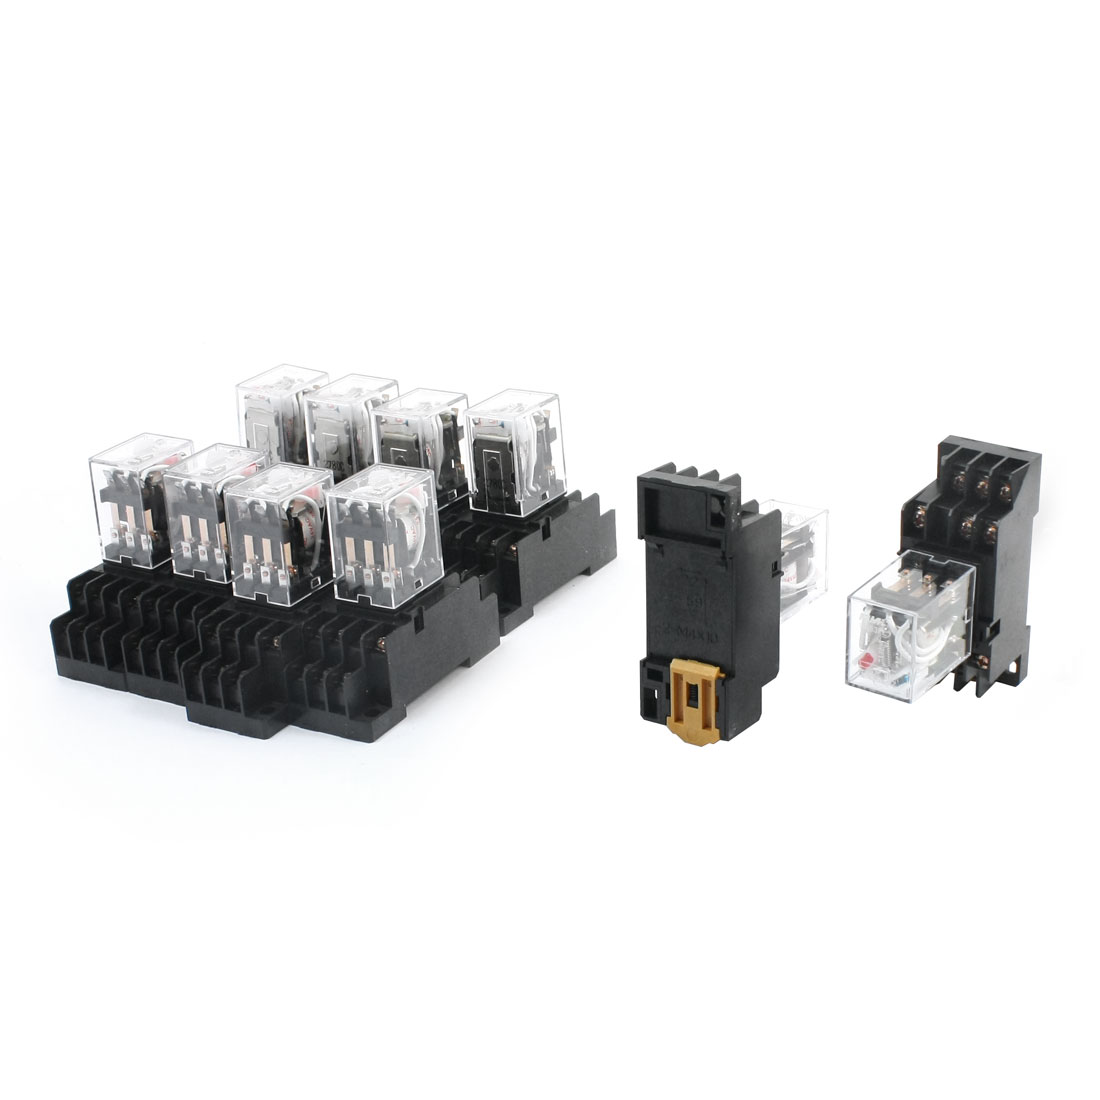 10Pcs HH53PL AC24V Coil Red Light 3PDT 3NO 3NC 11 Pins Pluggable Type 35mm DIN Rail Mounting General Purpose Power Relay w Socket Base